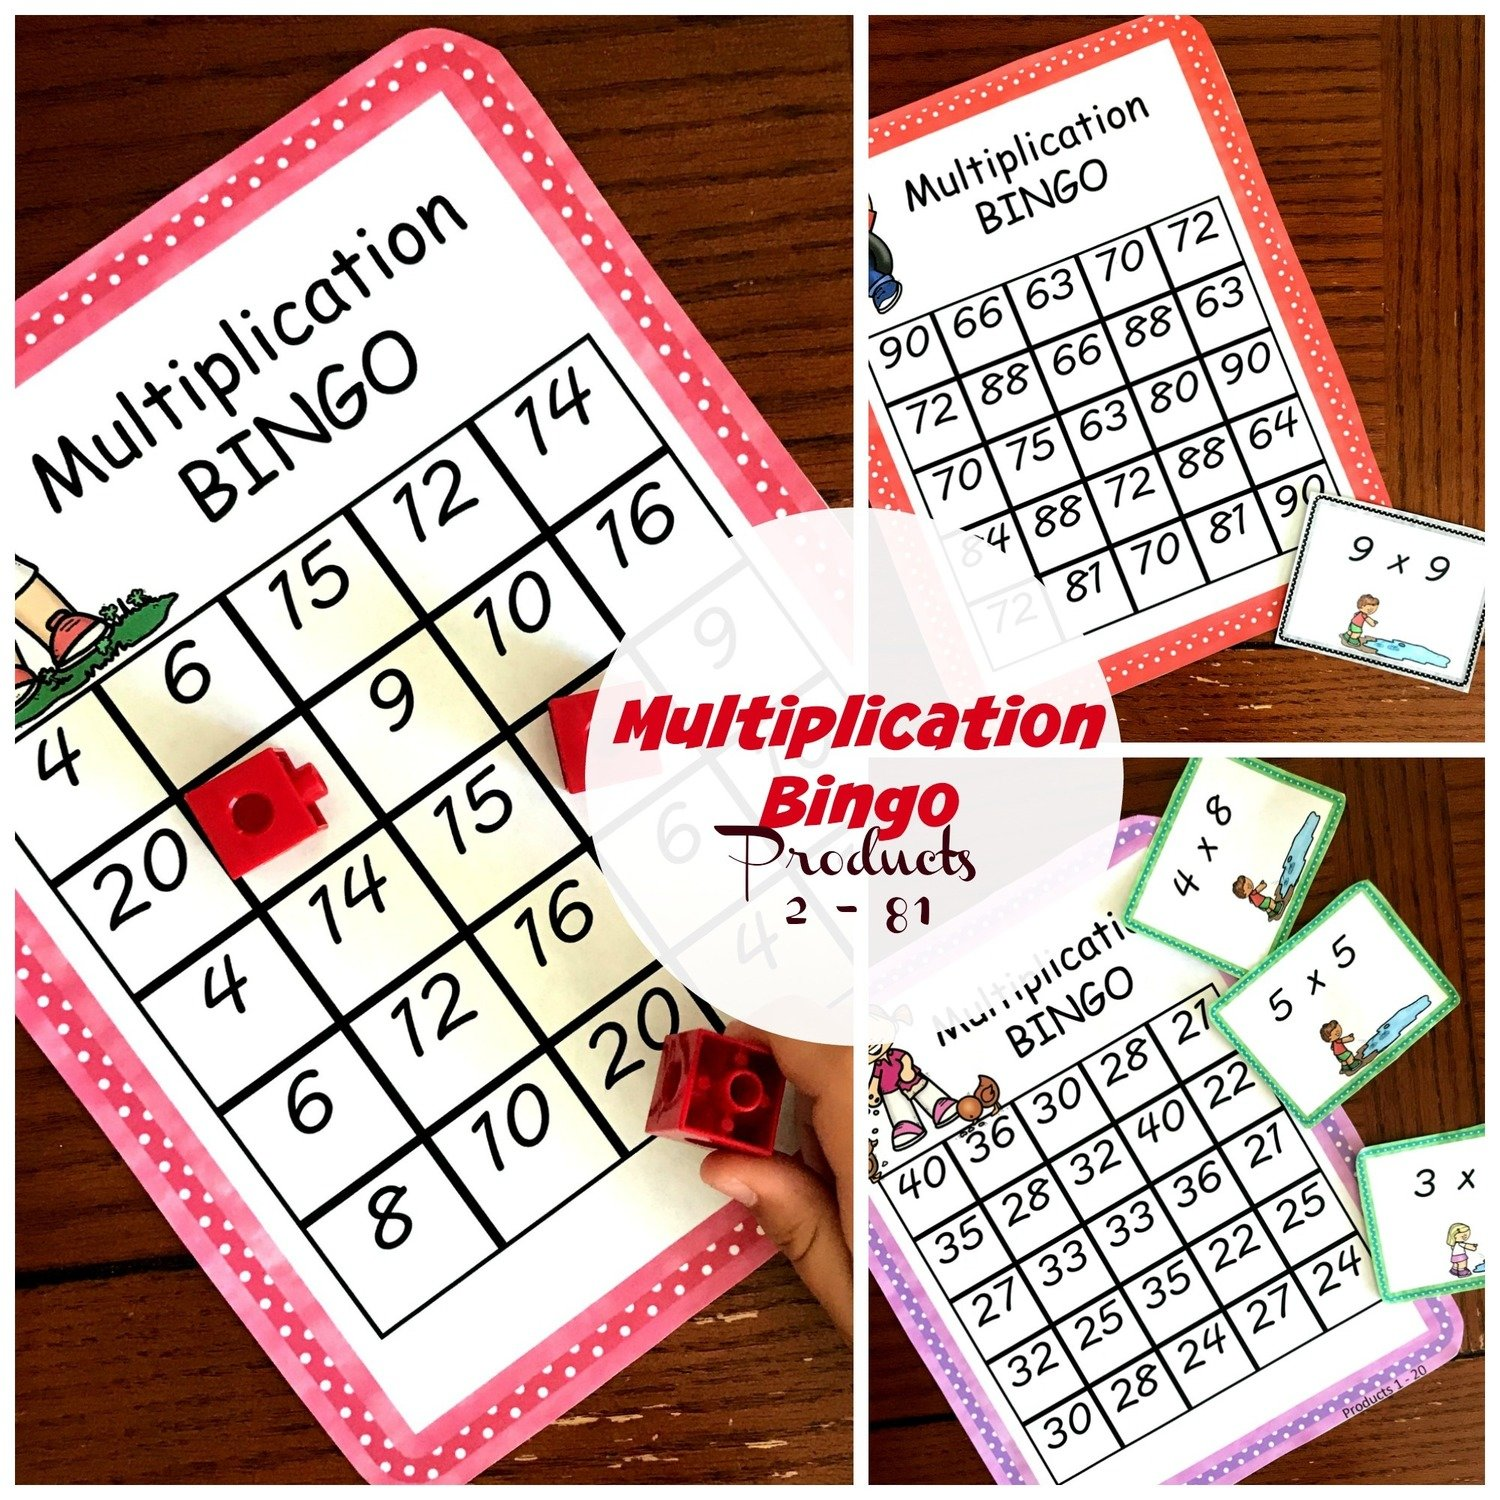 Multiplication BINGO - A Fun Game to Practice Multiplication Facts